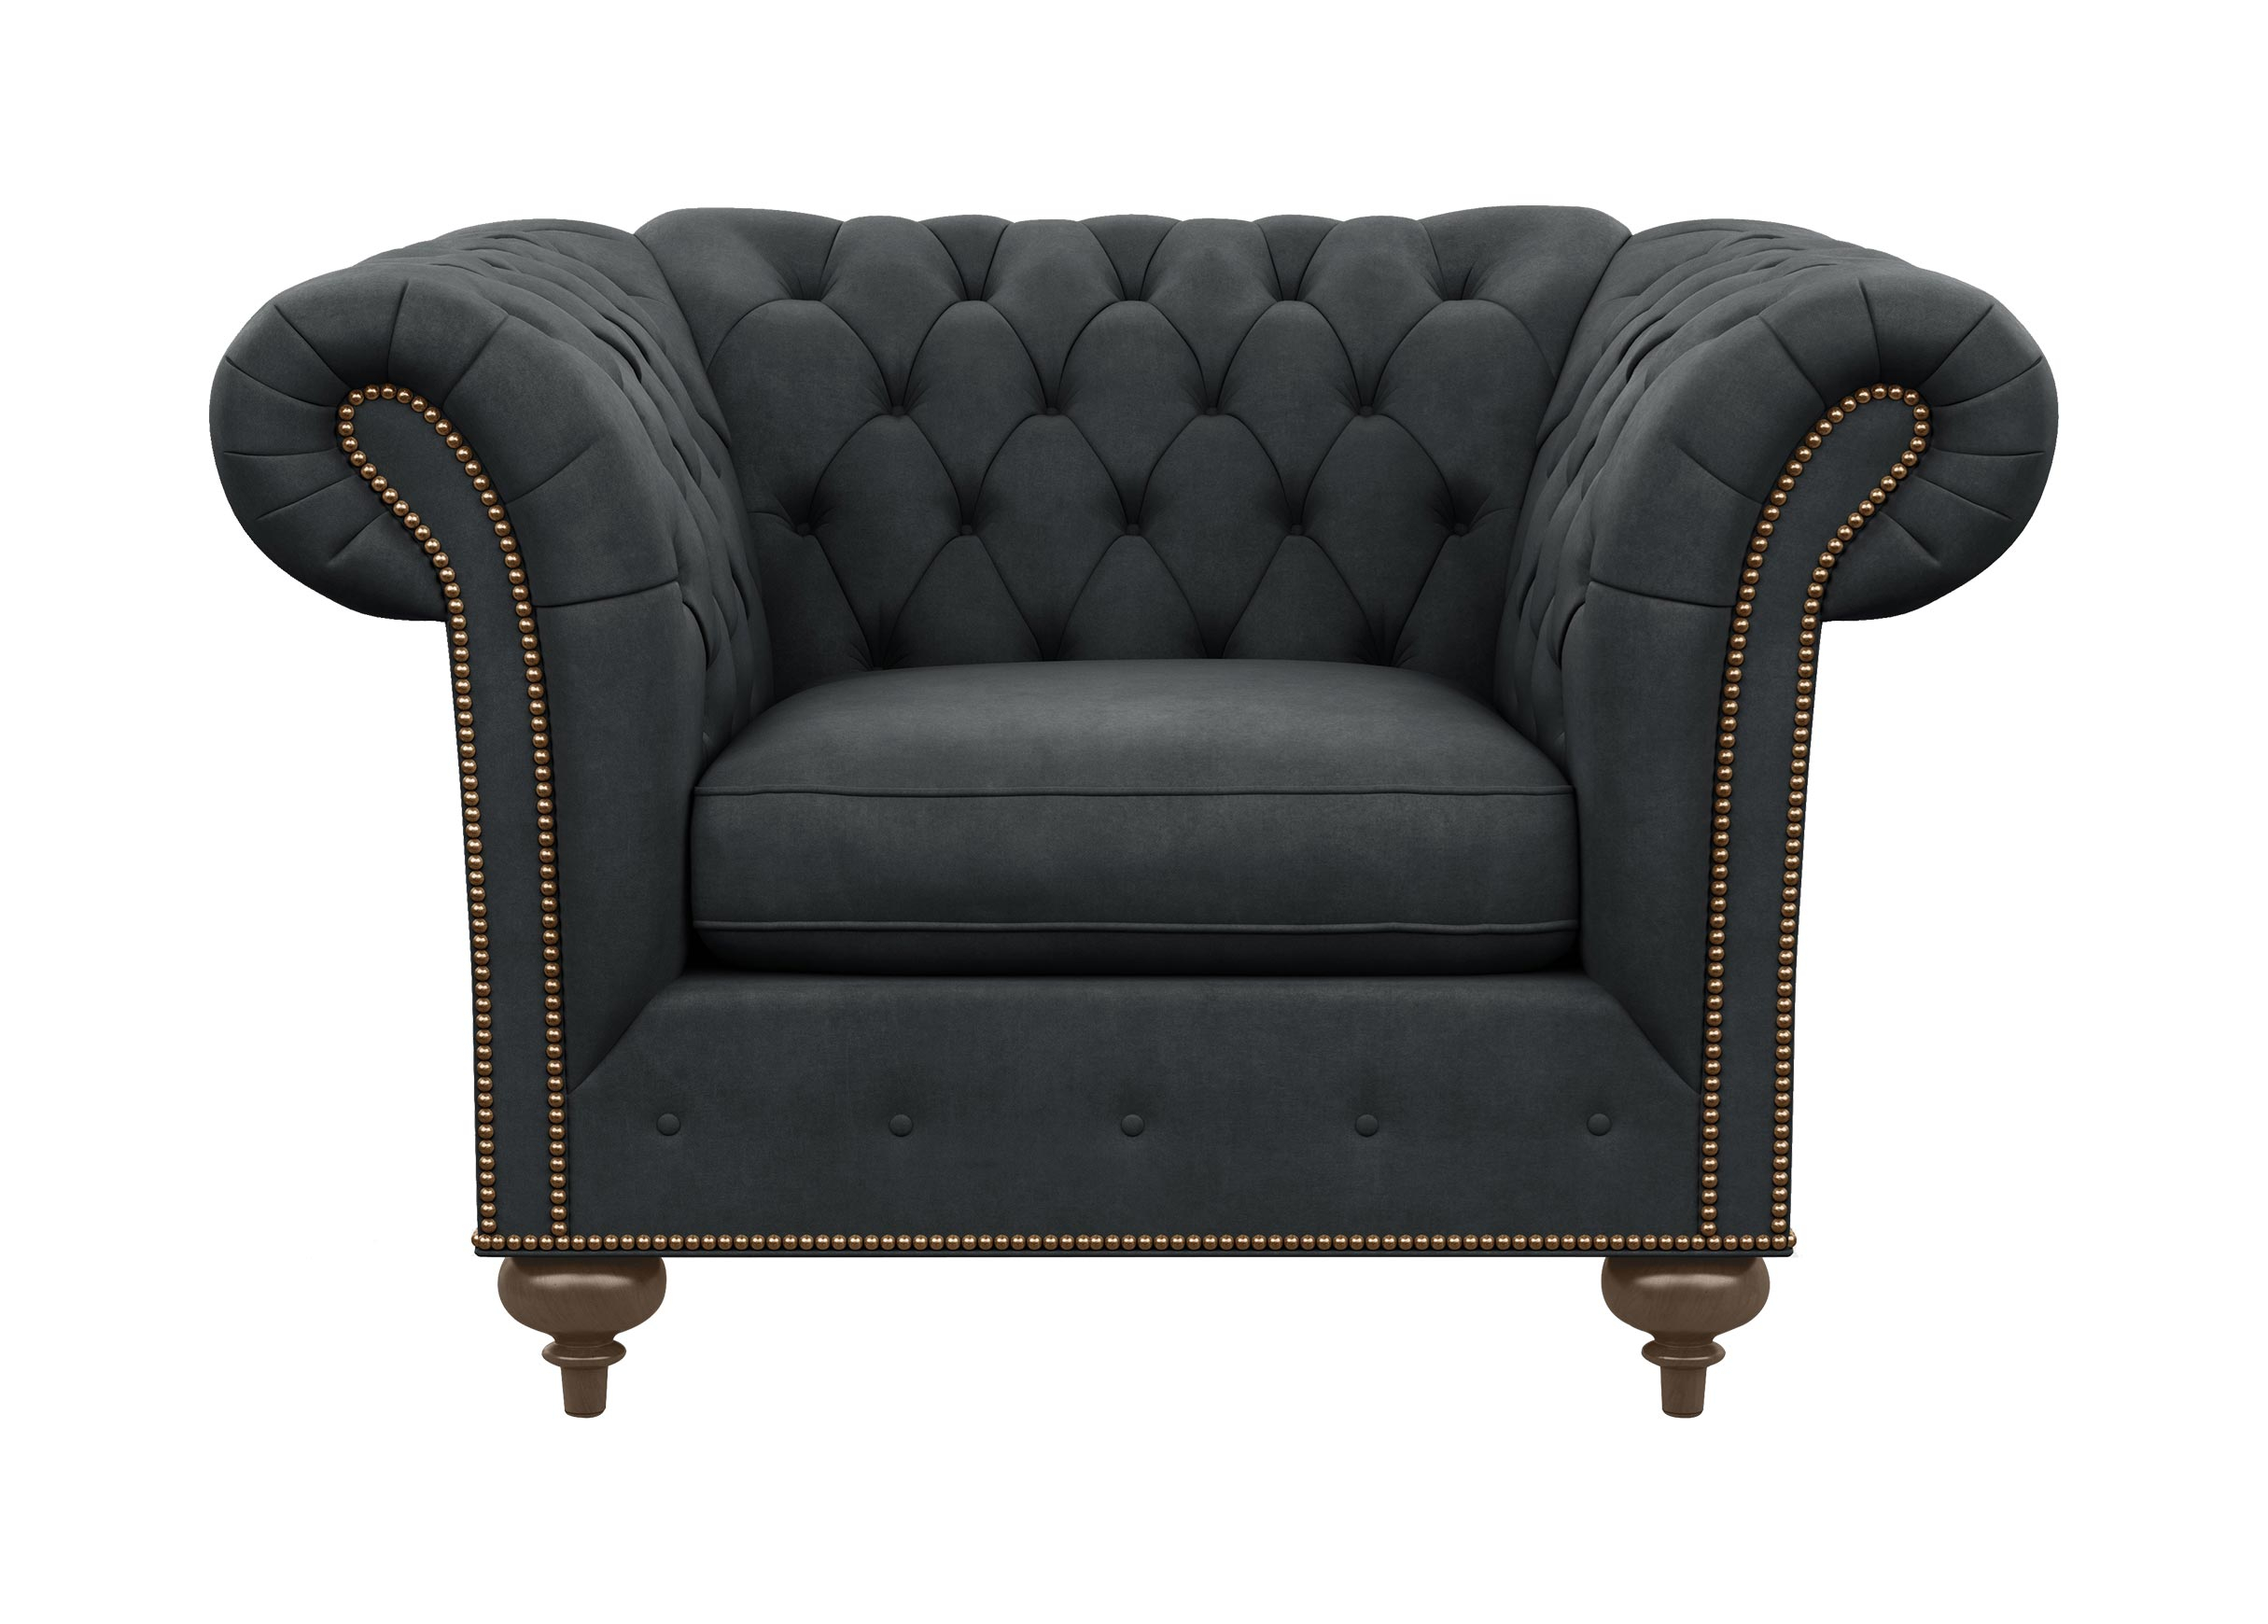 Mansfield Chair | Chairs & Chaises | Ethan Allen Pertaining To Mansfield Beige Linen Sofa Chairs (View 17 of 25)